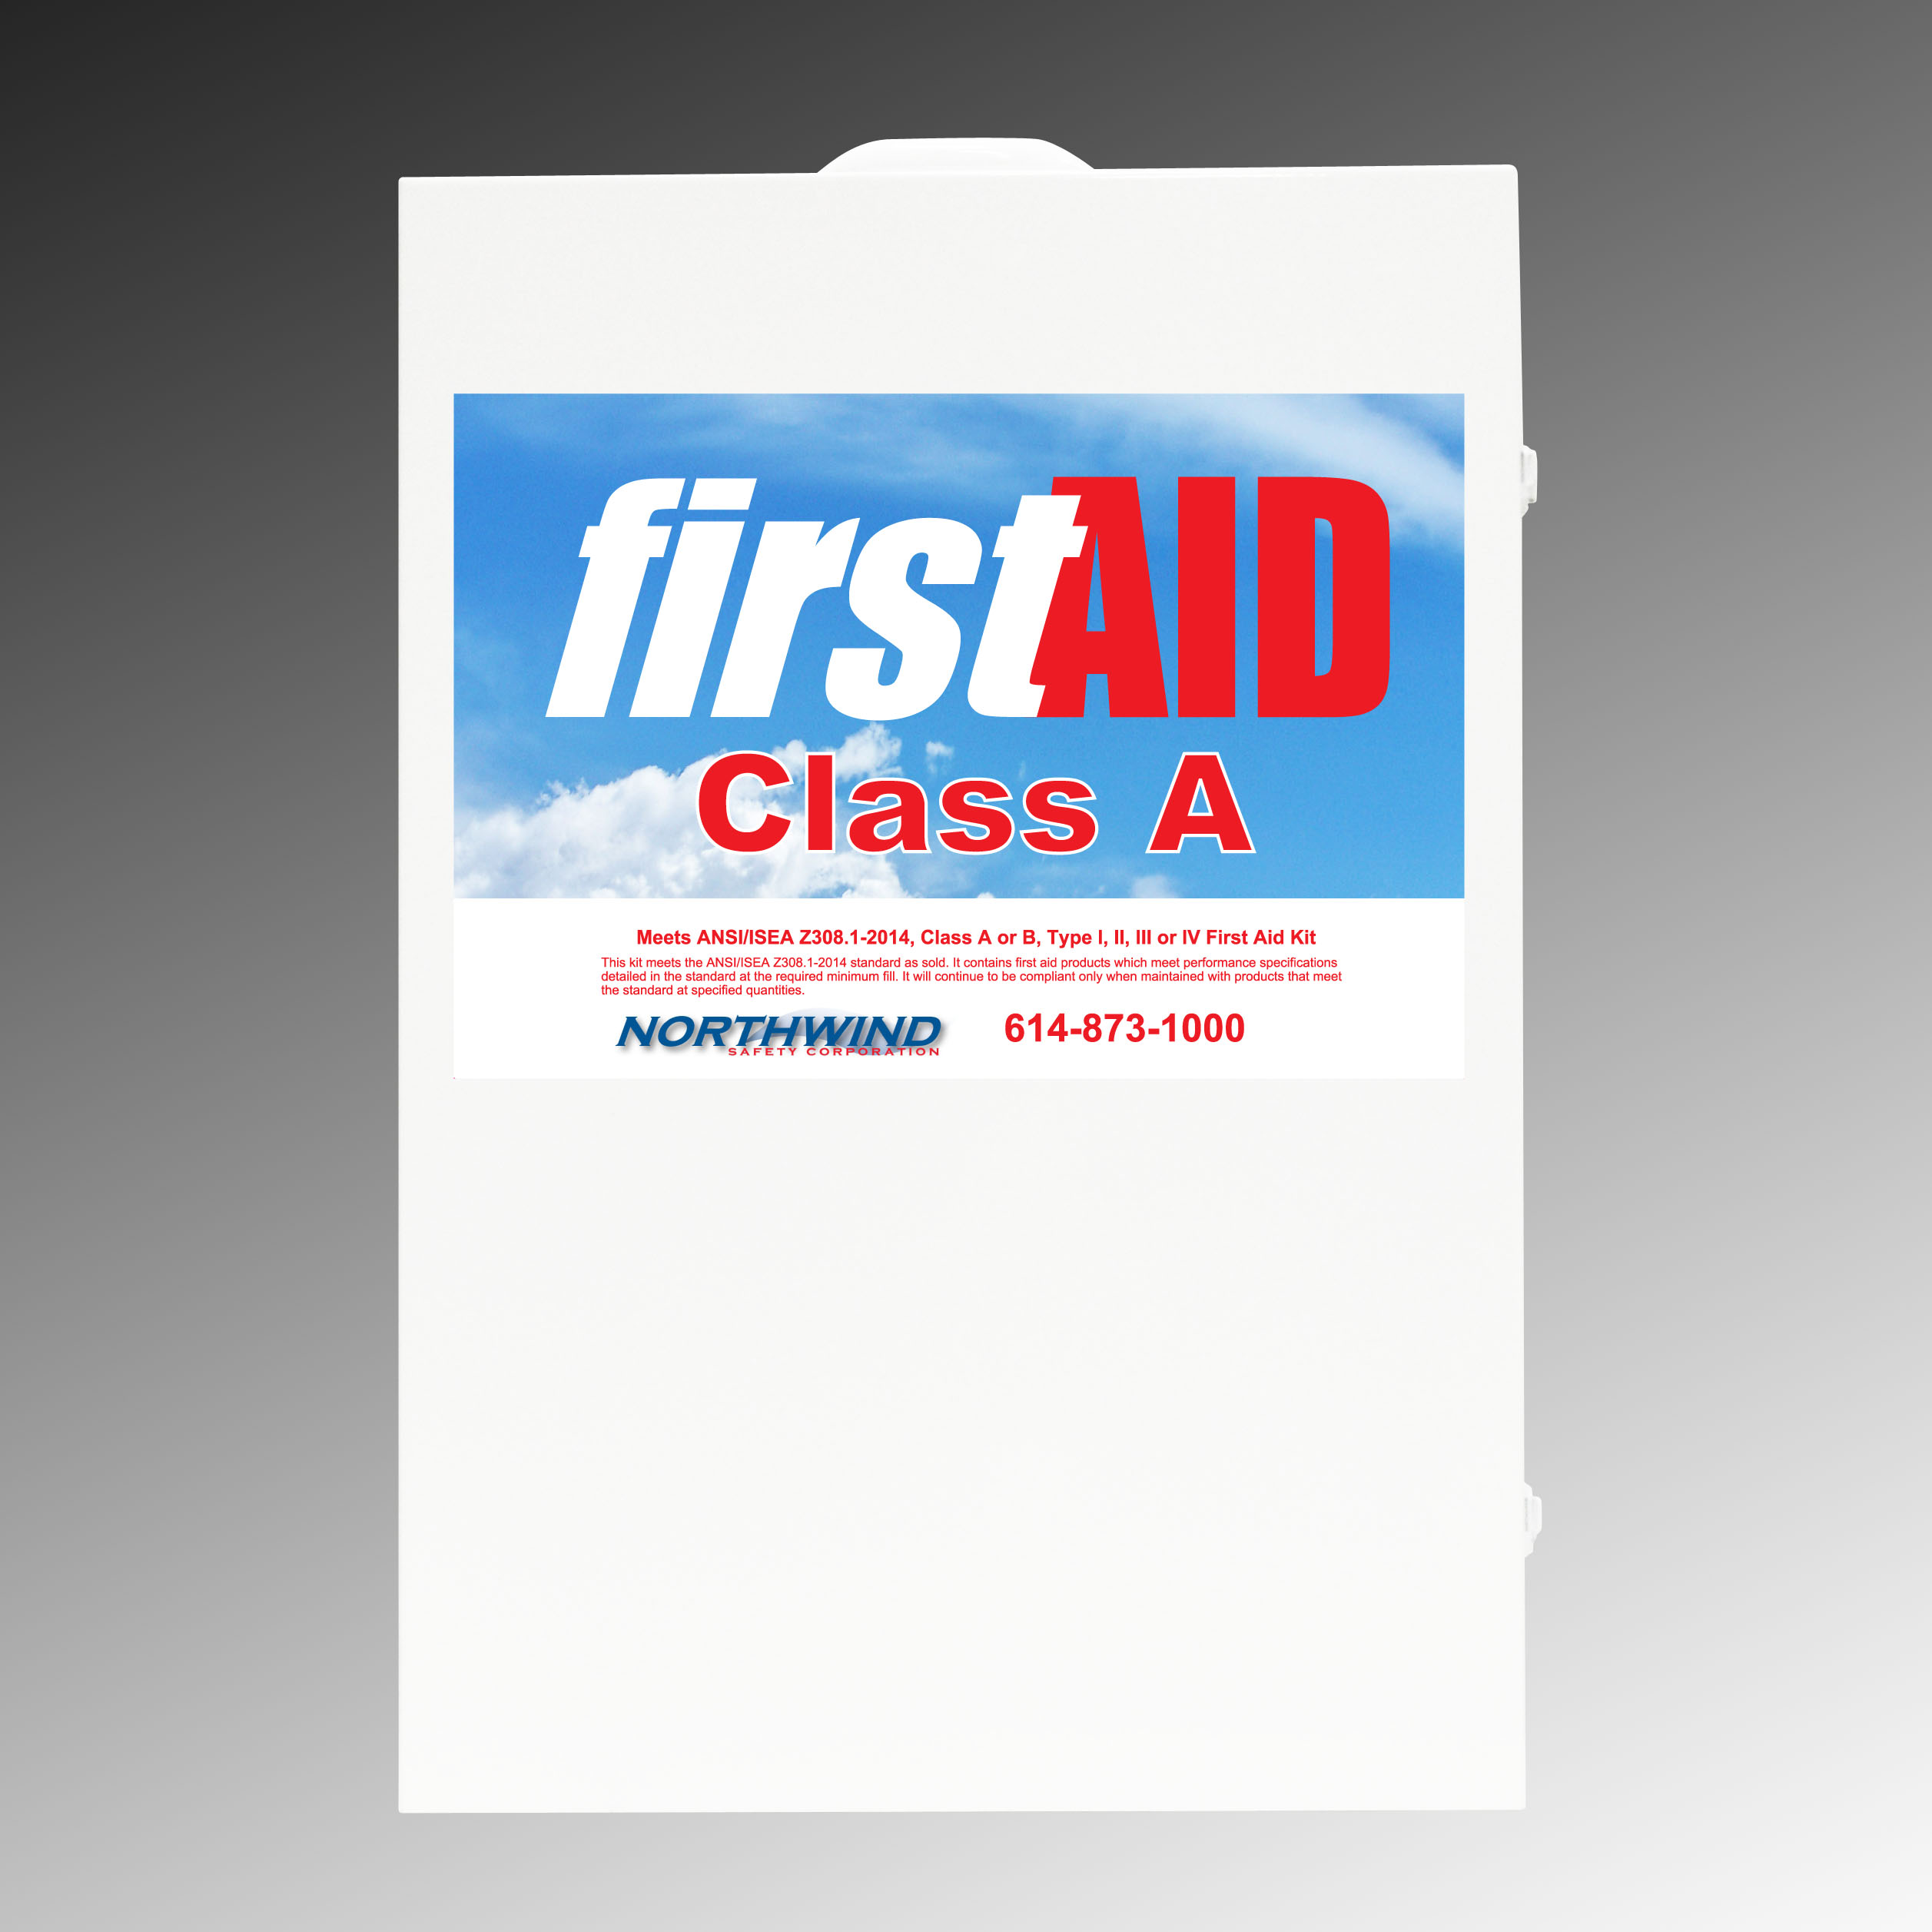 First Aid Cabinet 460 Class A ANSI 2015 Compliant